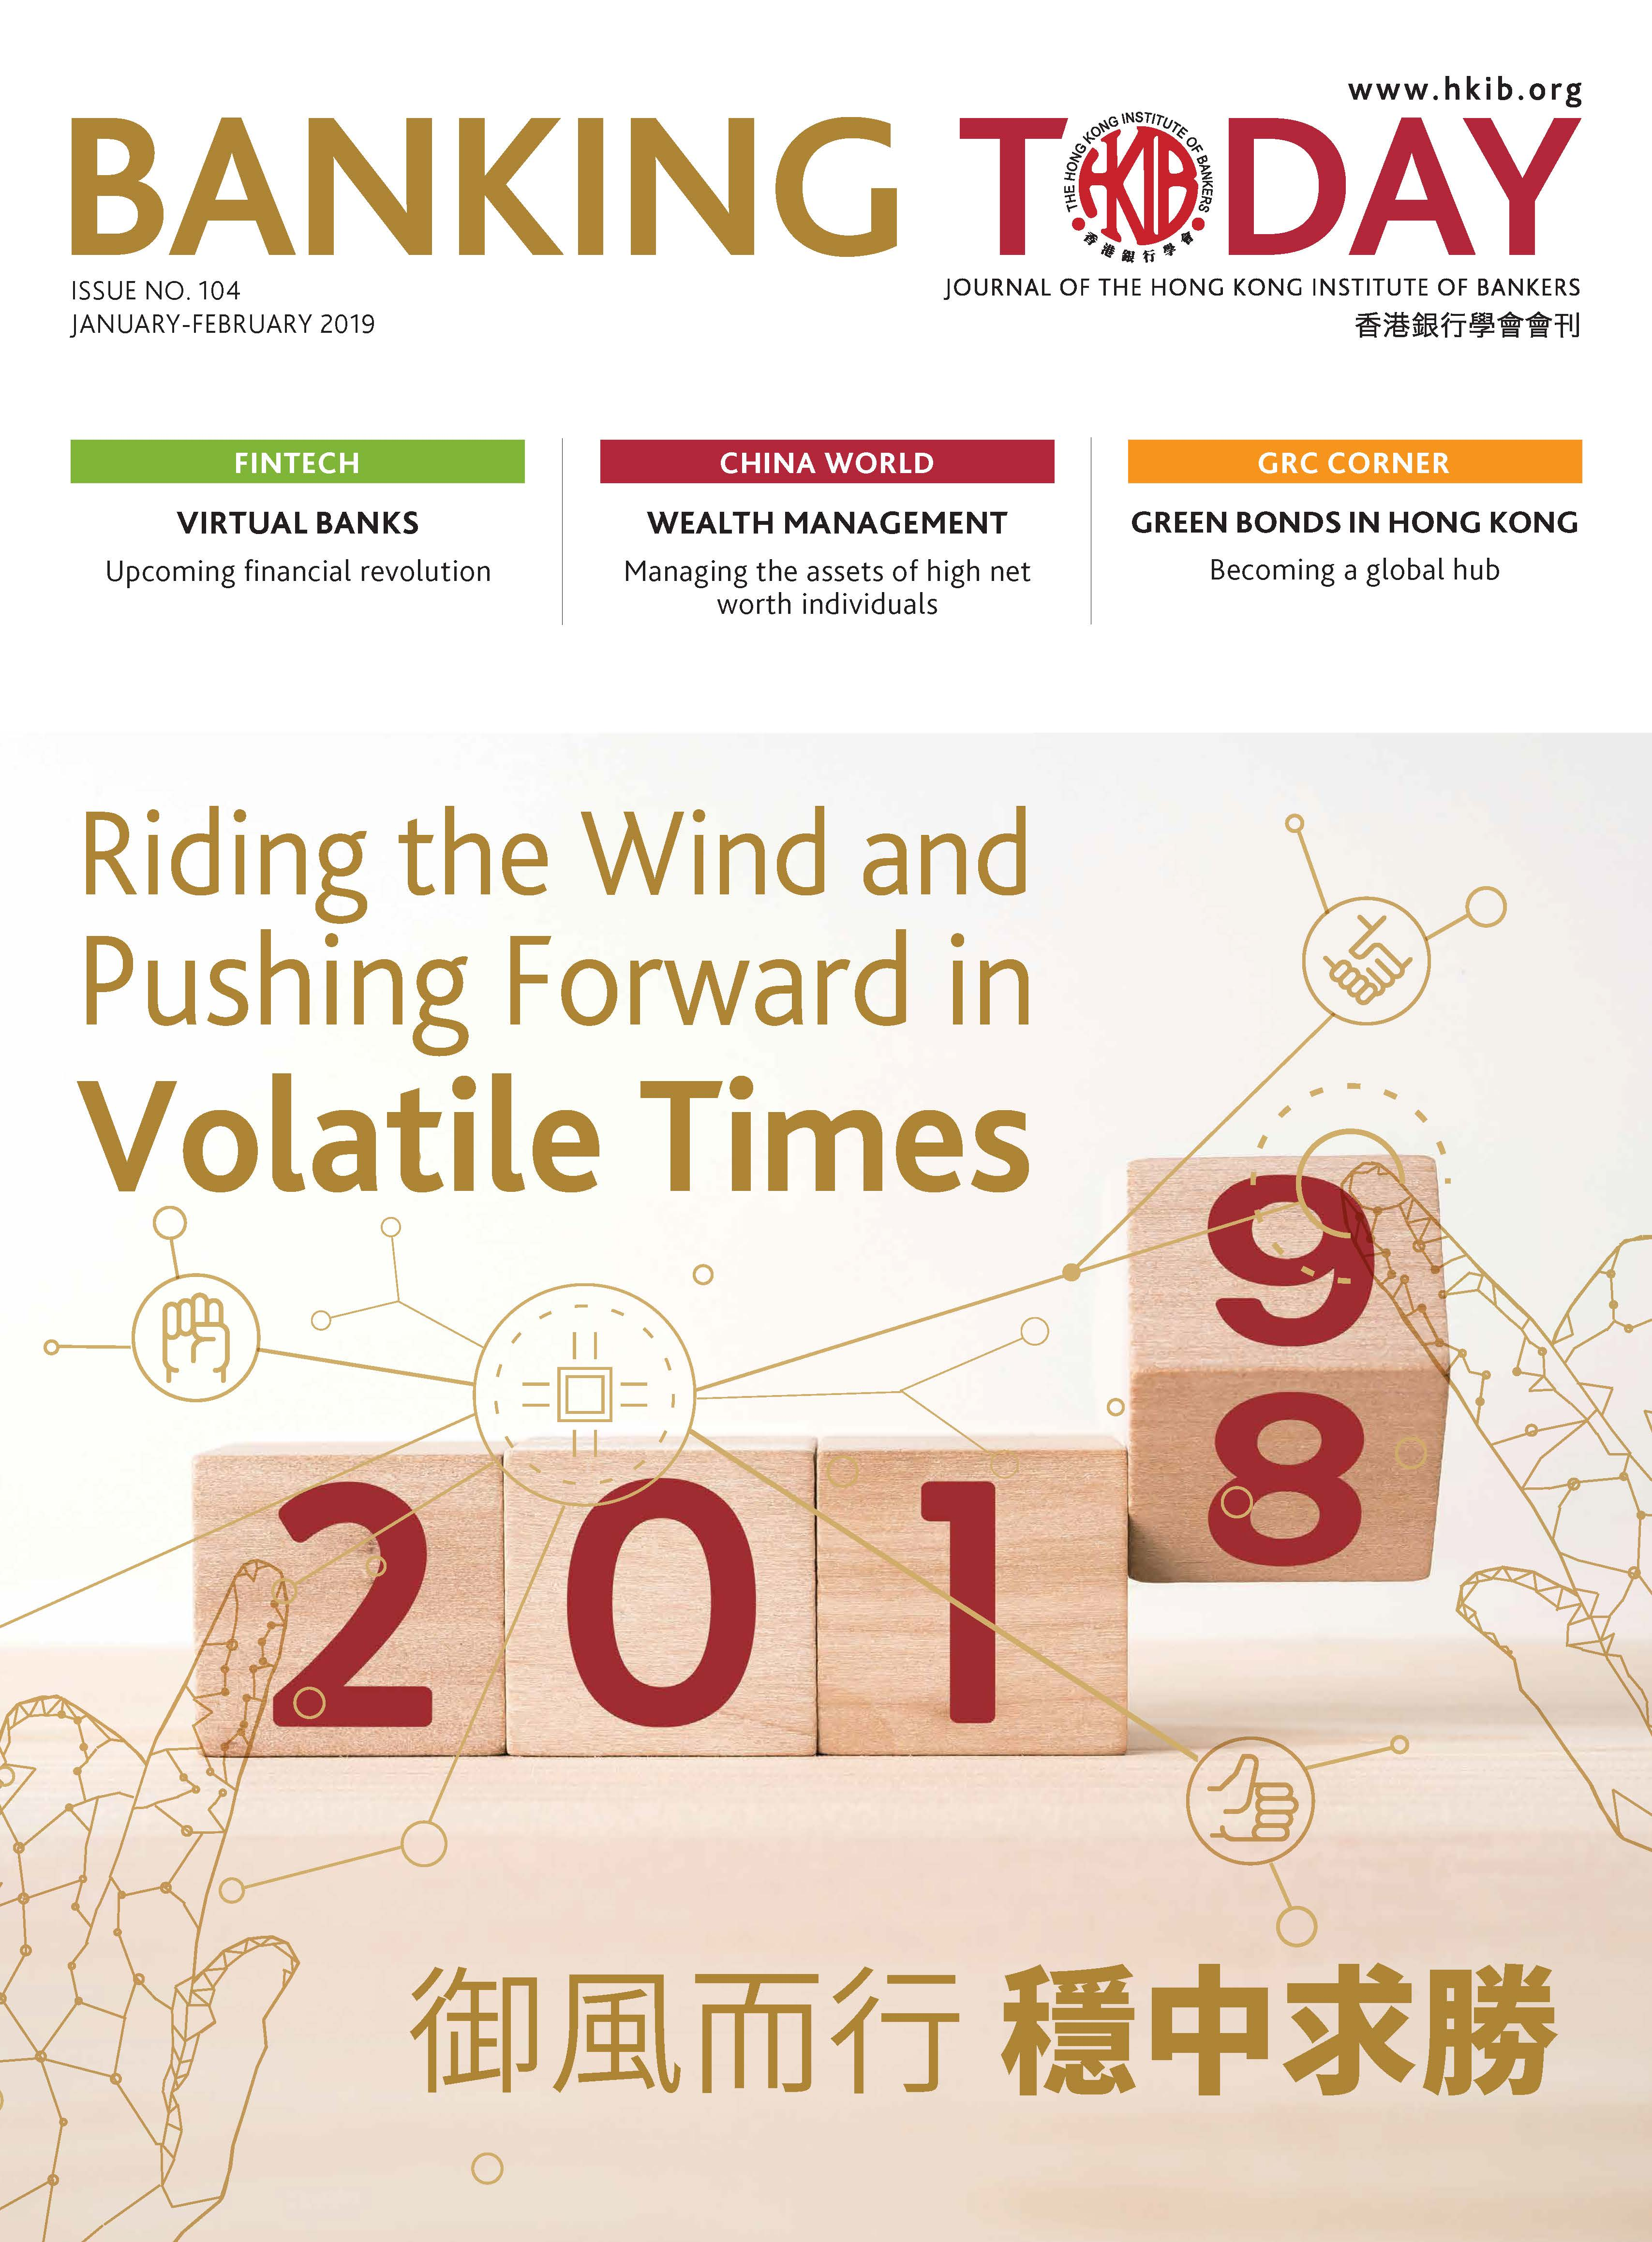 Riding the Wind and Pushing Forward in Volatile Times